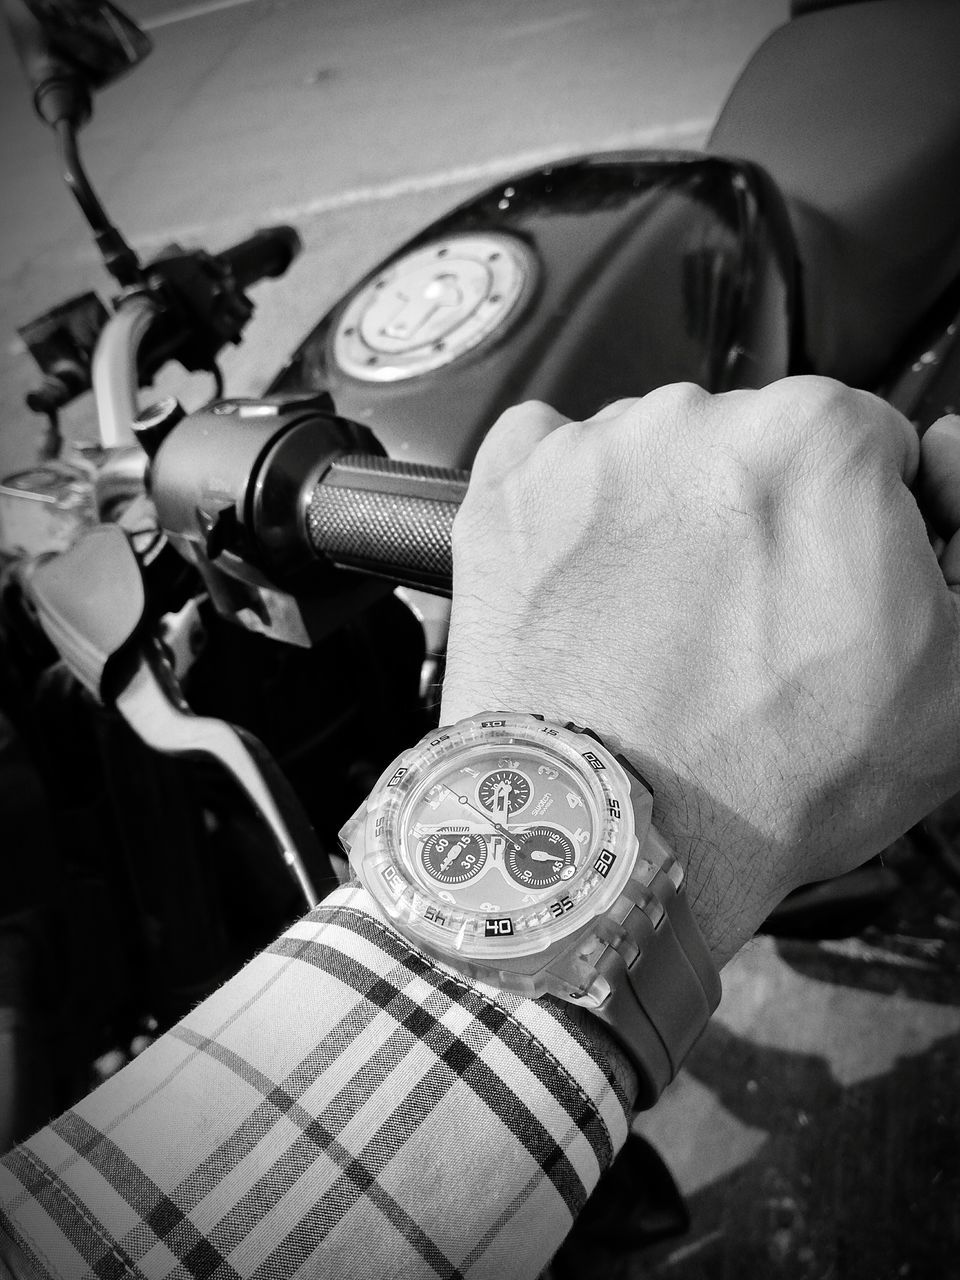 human hand, human body part, real people, holding, one person, wristwatch, time, men, watch, close-up, day, technology, outdoors, clock, people